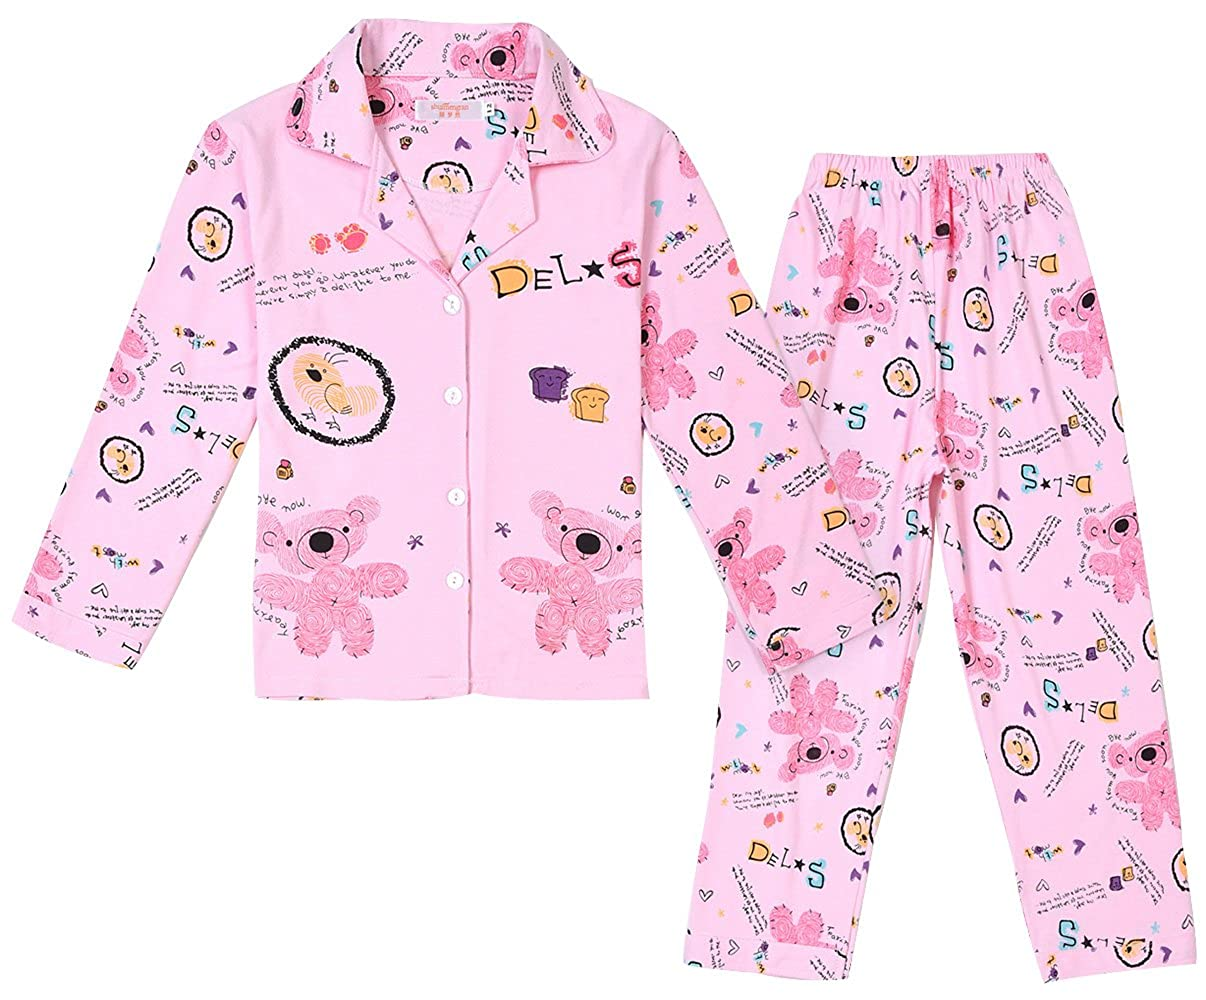 TRENDY XU Cartoon Bears Print 2 Pcs Pajamas Set Long Sleeve Button Sleepwear For Girls